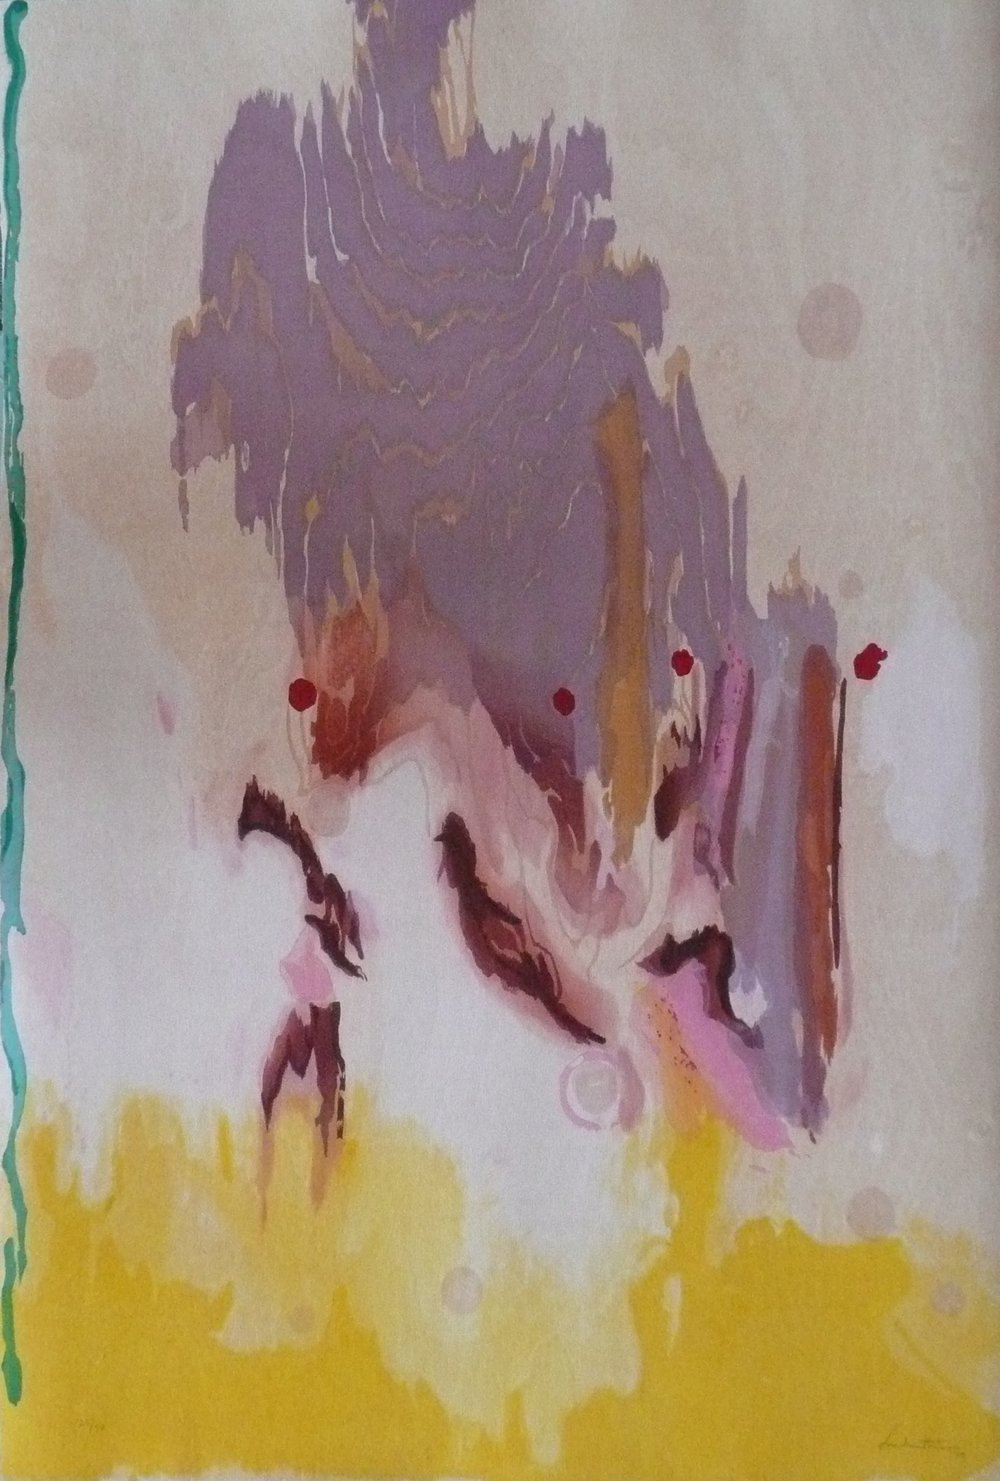 Abstract woodcut by Helen Frankenthaler